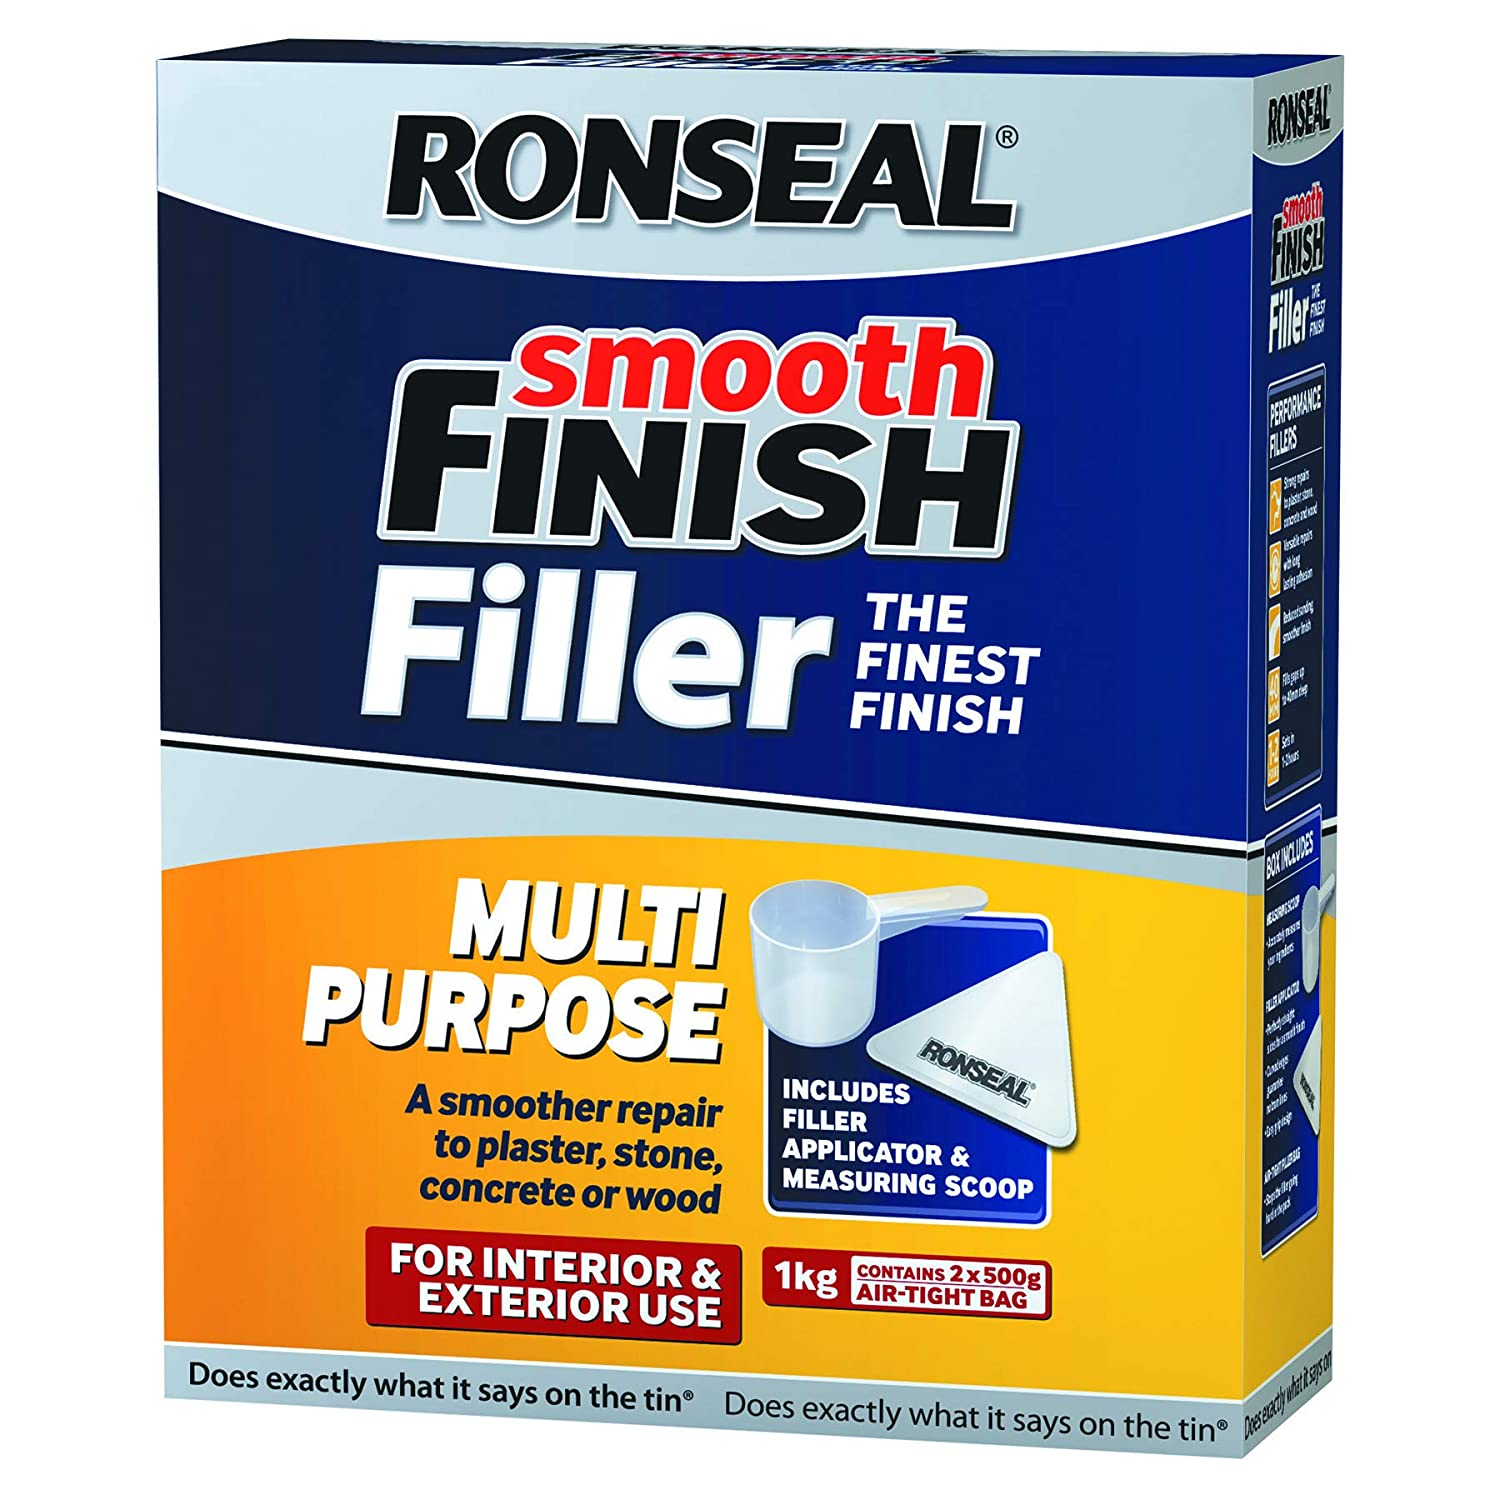 Ronseal Smooth Finish Multi-Purpose Interior Wall Powder Filler 1Kg RSLMPPF1KG